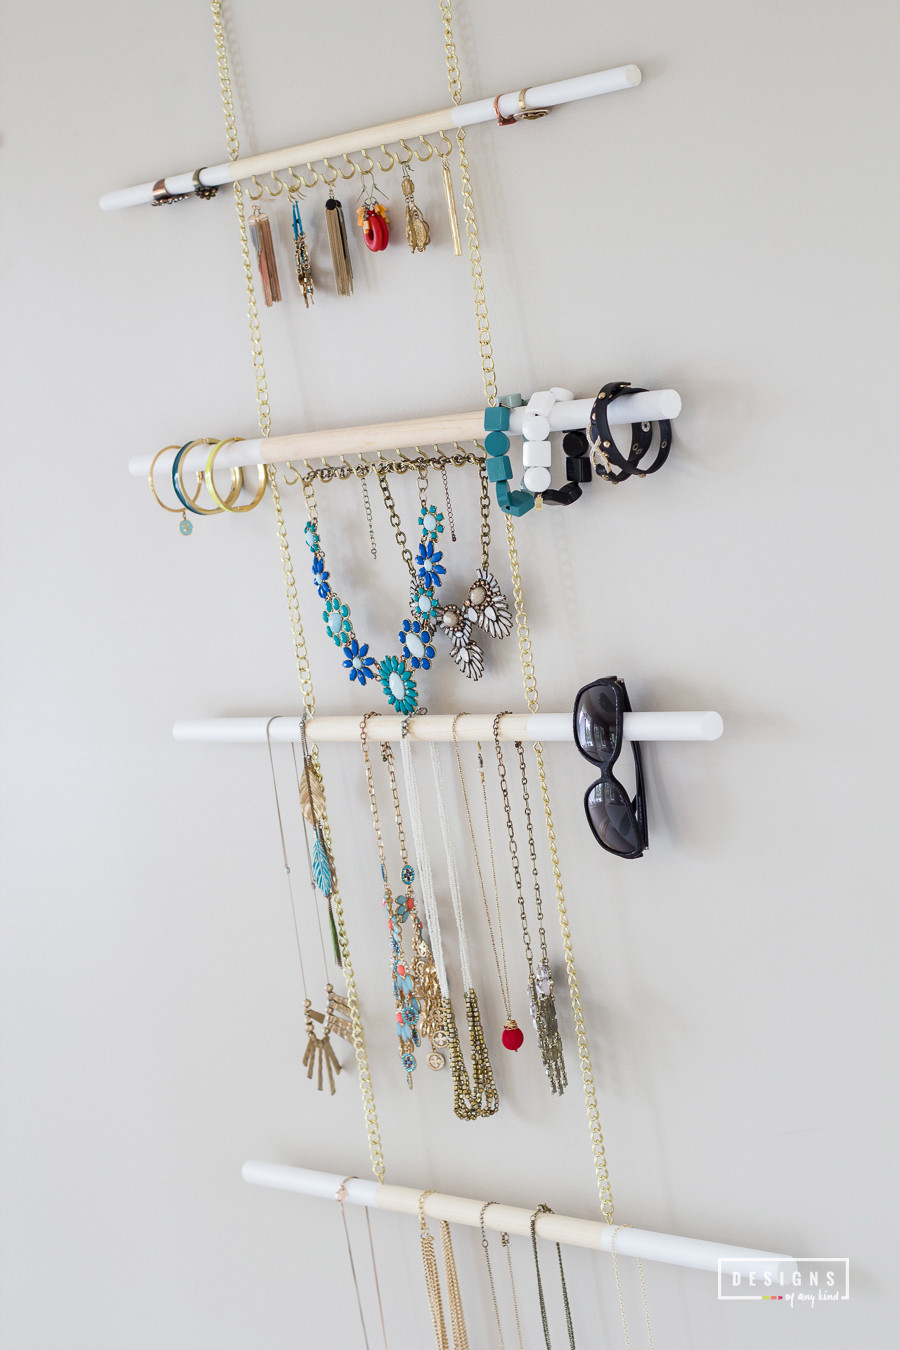 DIY Hanging Organizer  DIY Modern Hanging Jewelry Organizer Designs of Any Kind